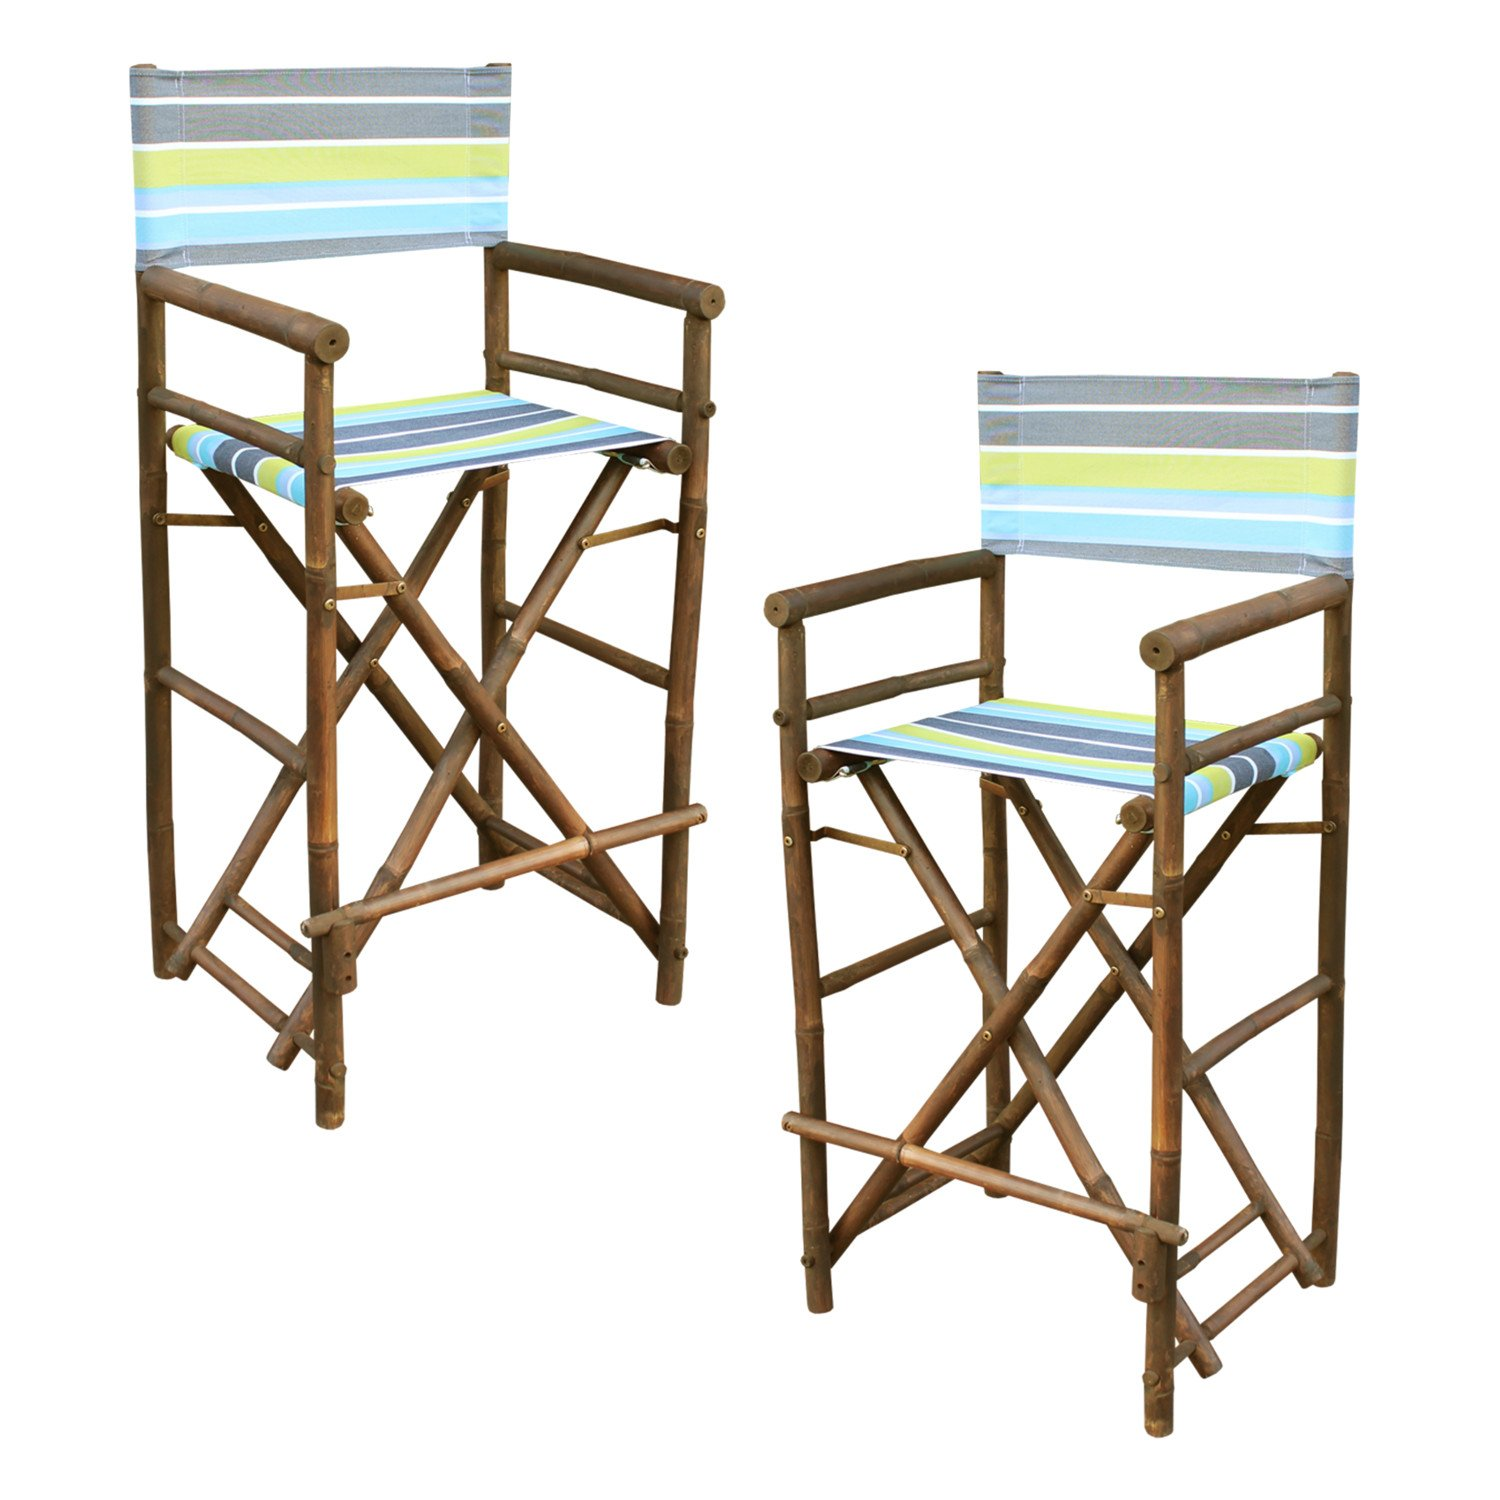 Statra Bamboo Barstool-Espresso Color Green Stripes Canvas Bar Height Folding Chairs Counter Stool Outdoor Indoor Tall Camping Set of 2, 15 x 15 by Statra